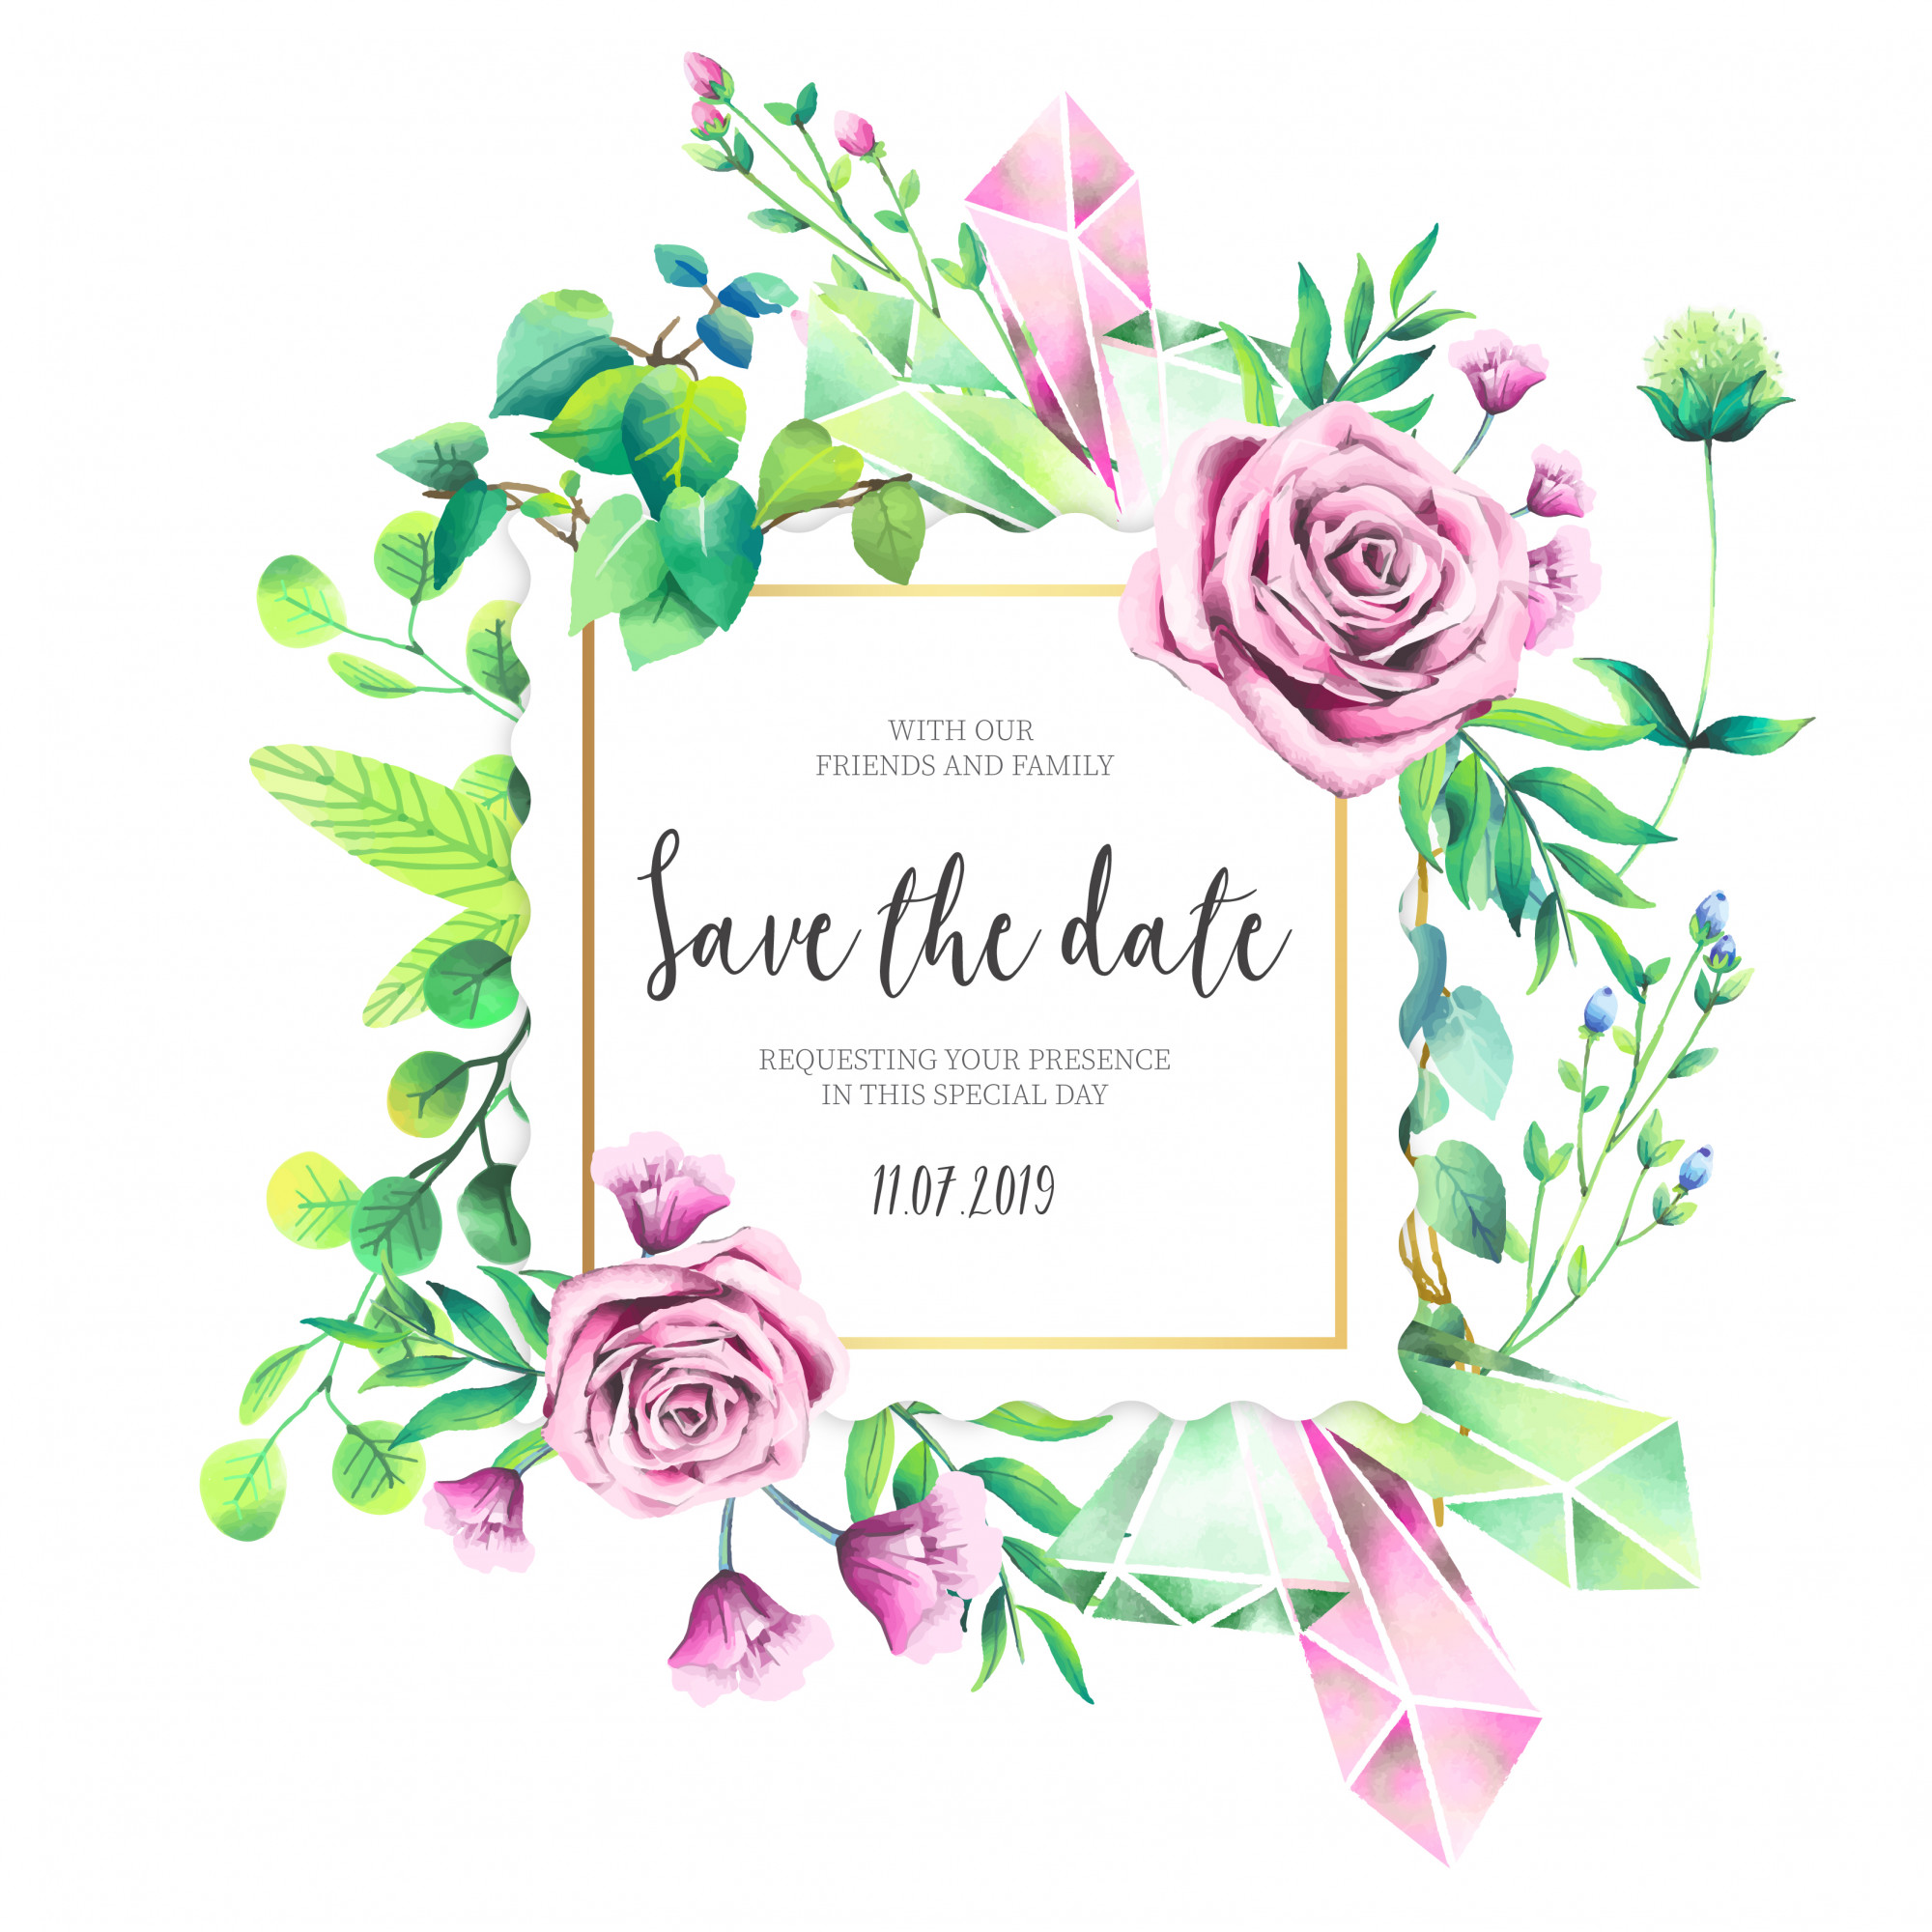 Beautiful Wedding Invitation with Pink Roses